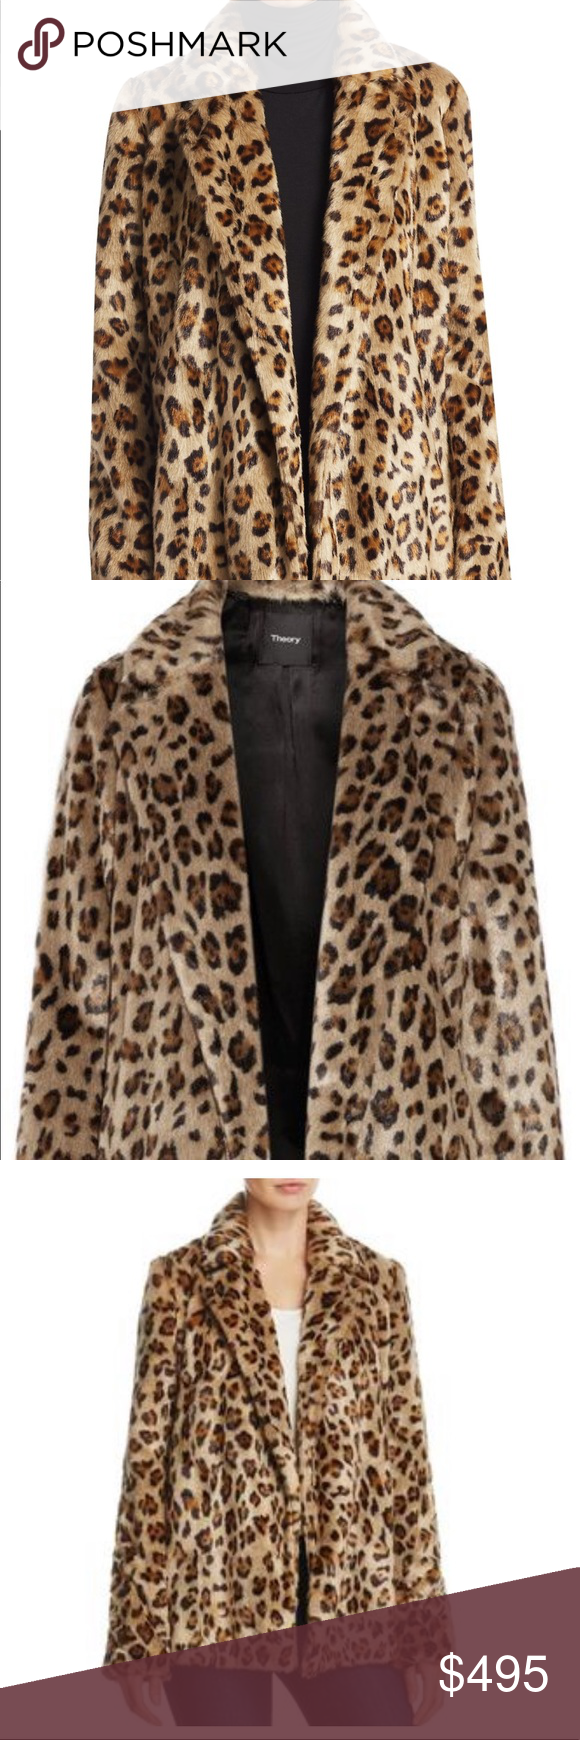 14f2801d42ef Theory Clairene Leopard Fur Coat Theory